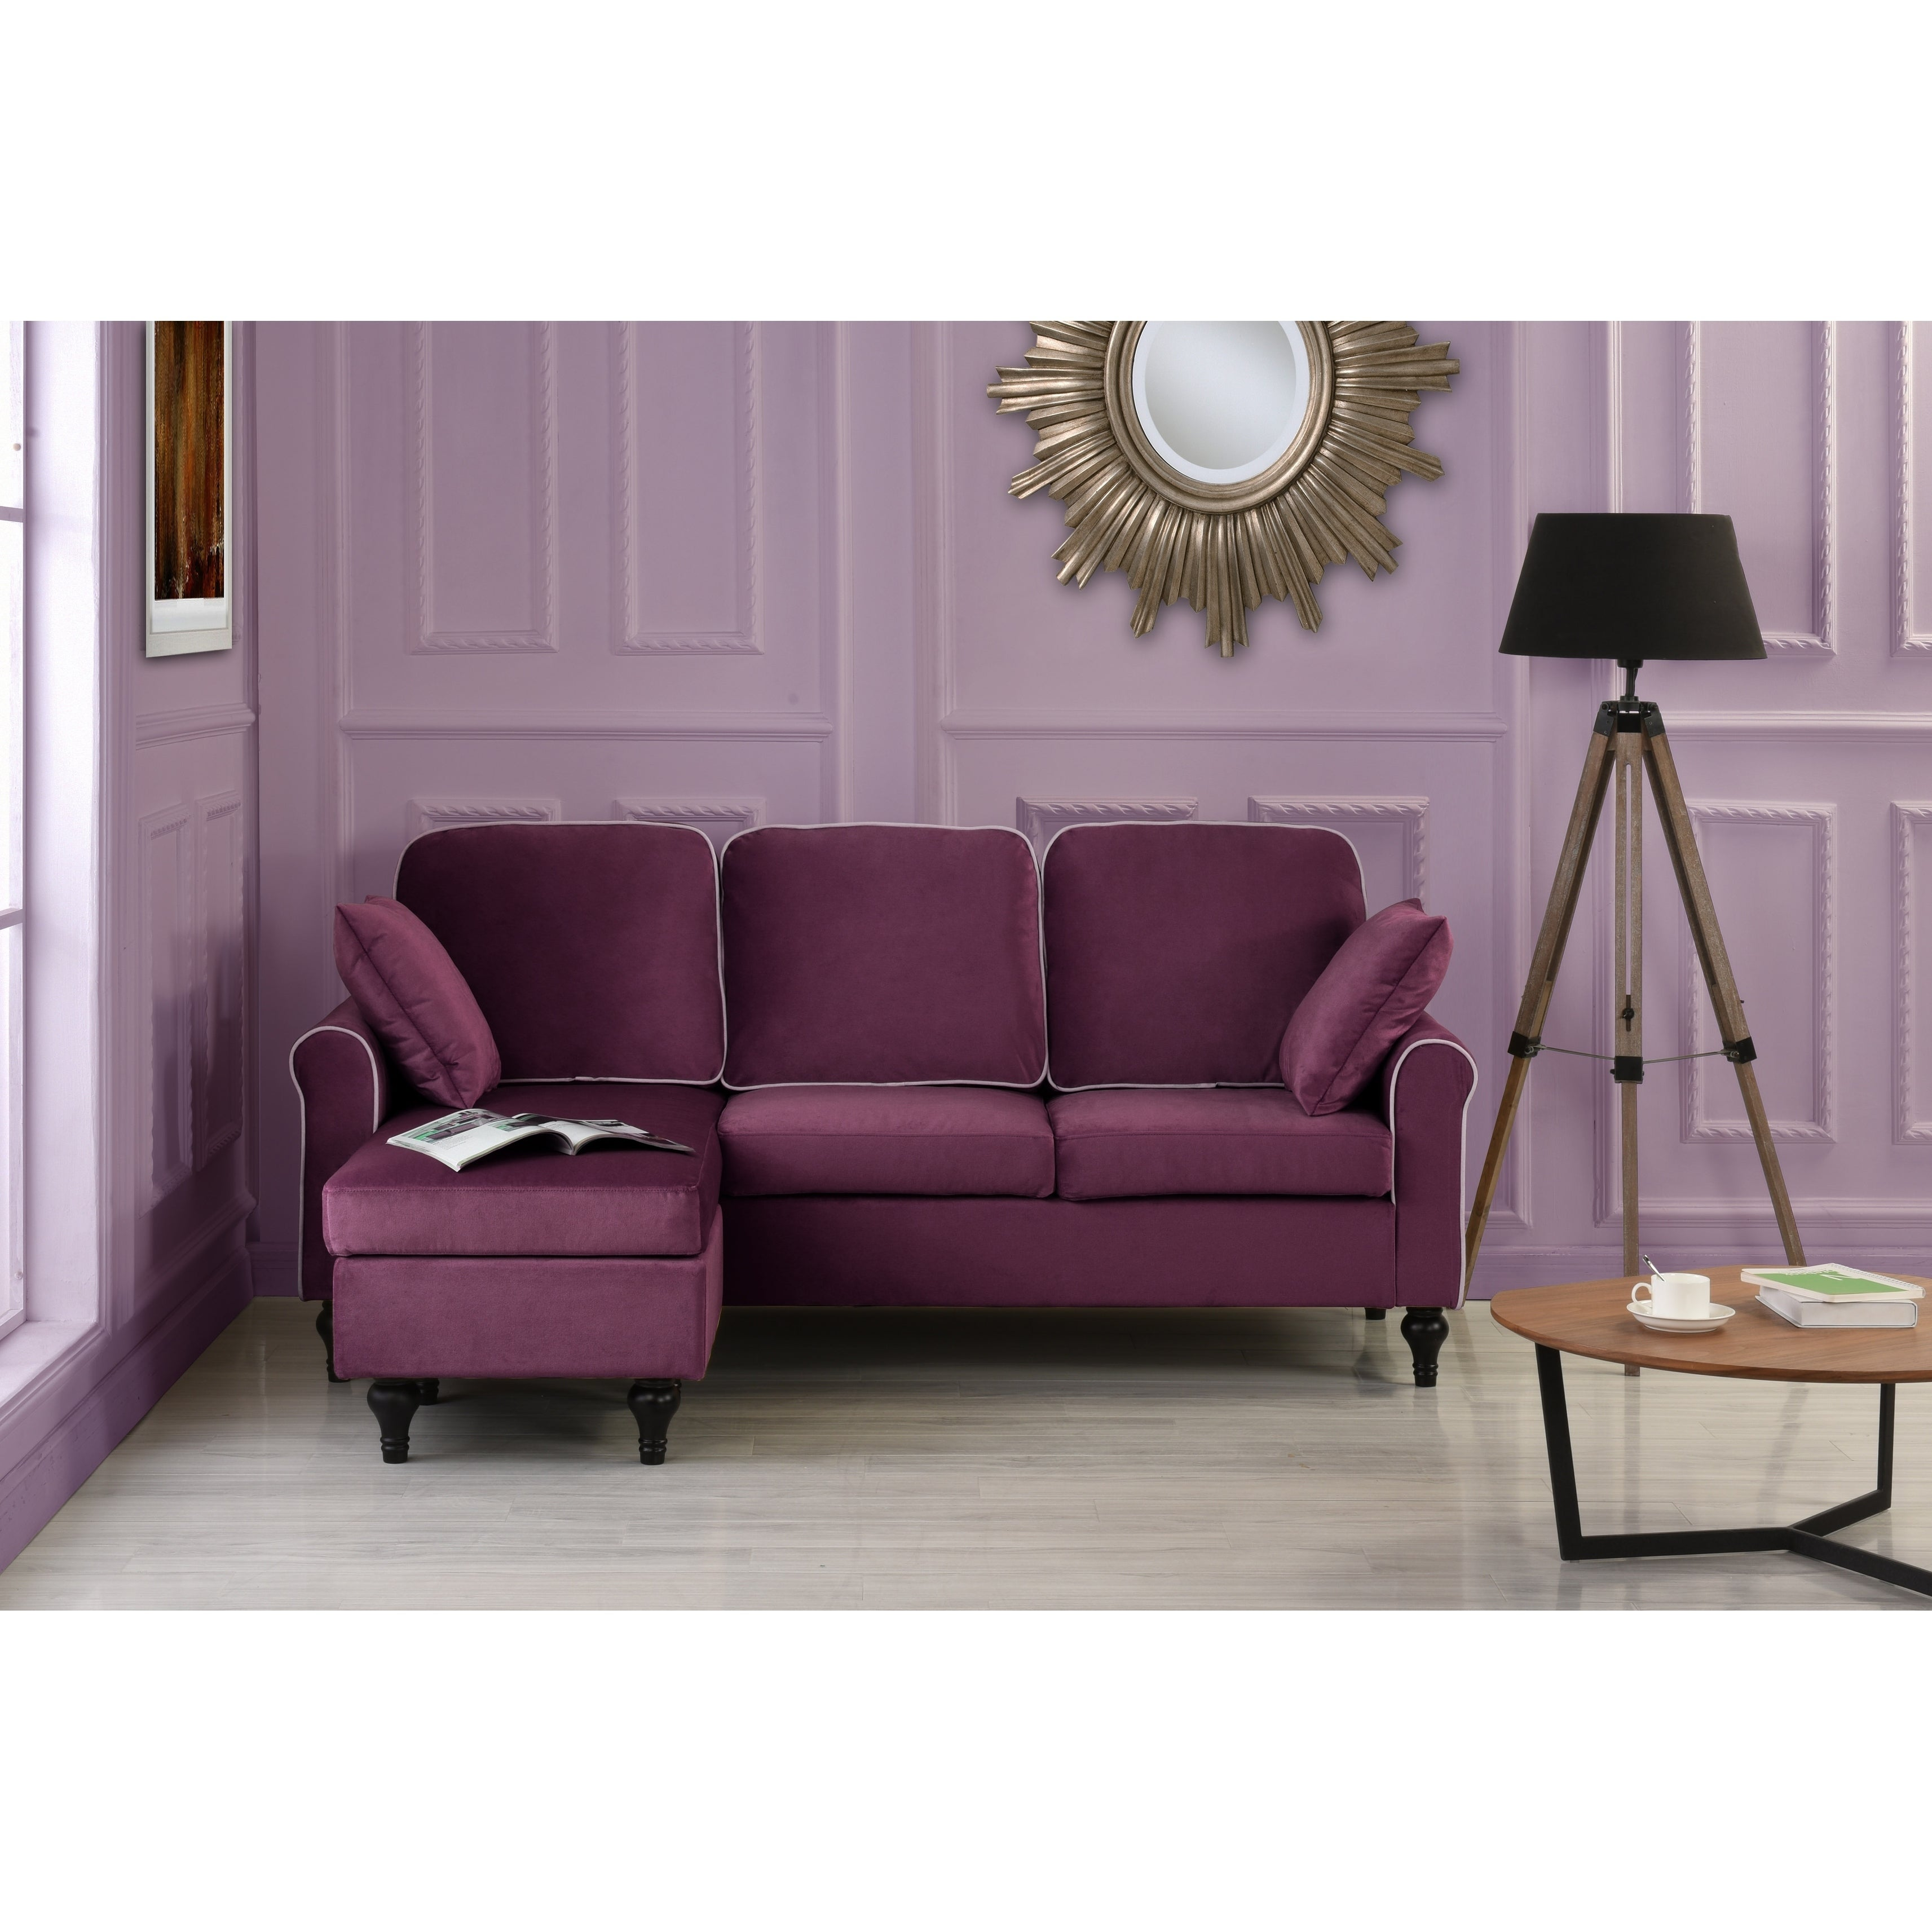 Picture of: Traditional Small Space Velvet Sectional Sofa With Reversible Chaise On Sale Overstock 13190443 Brown